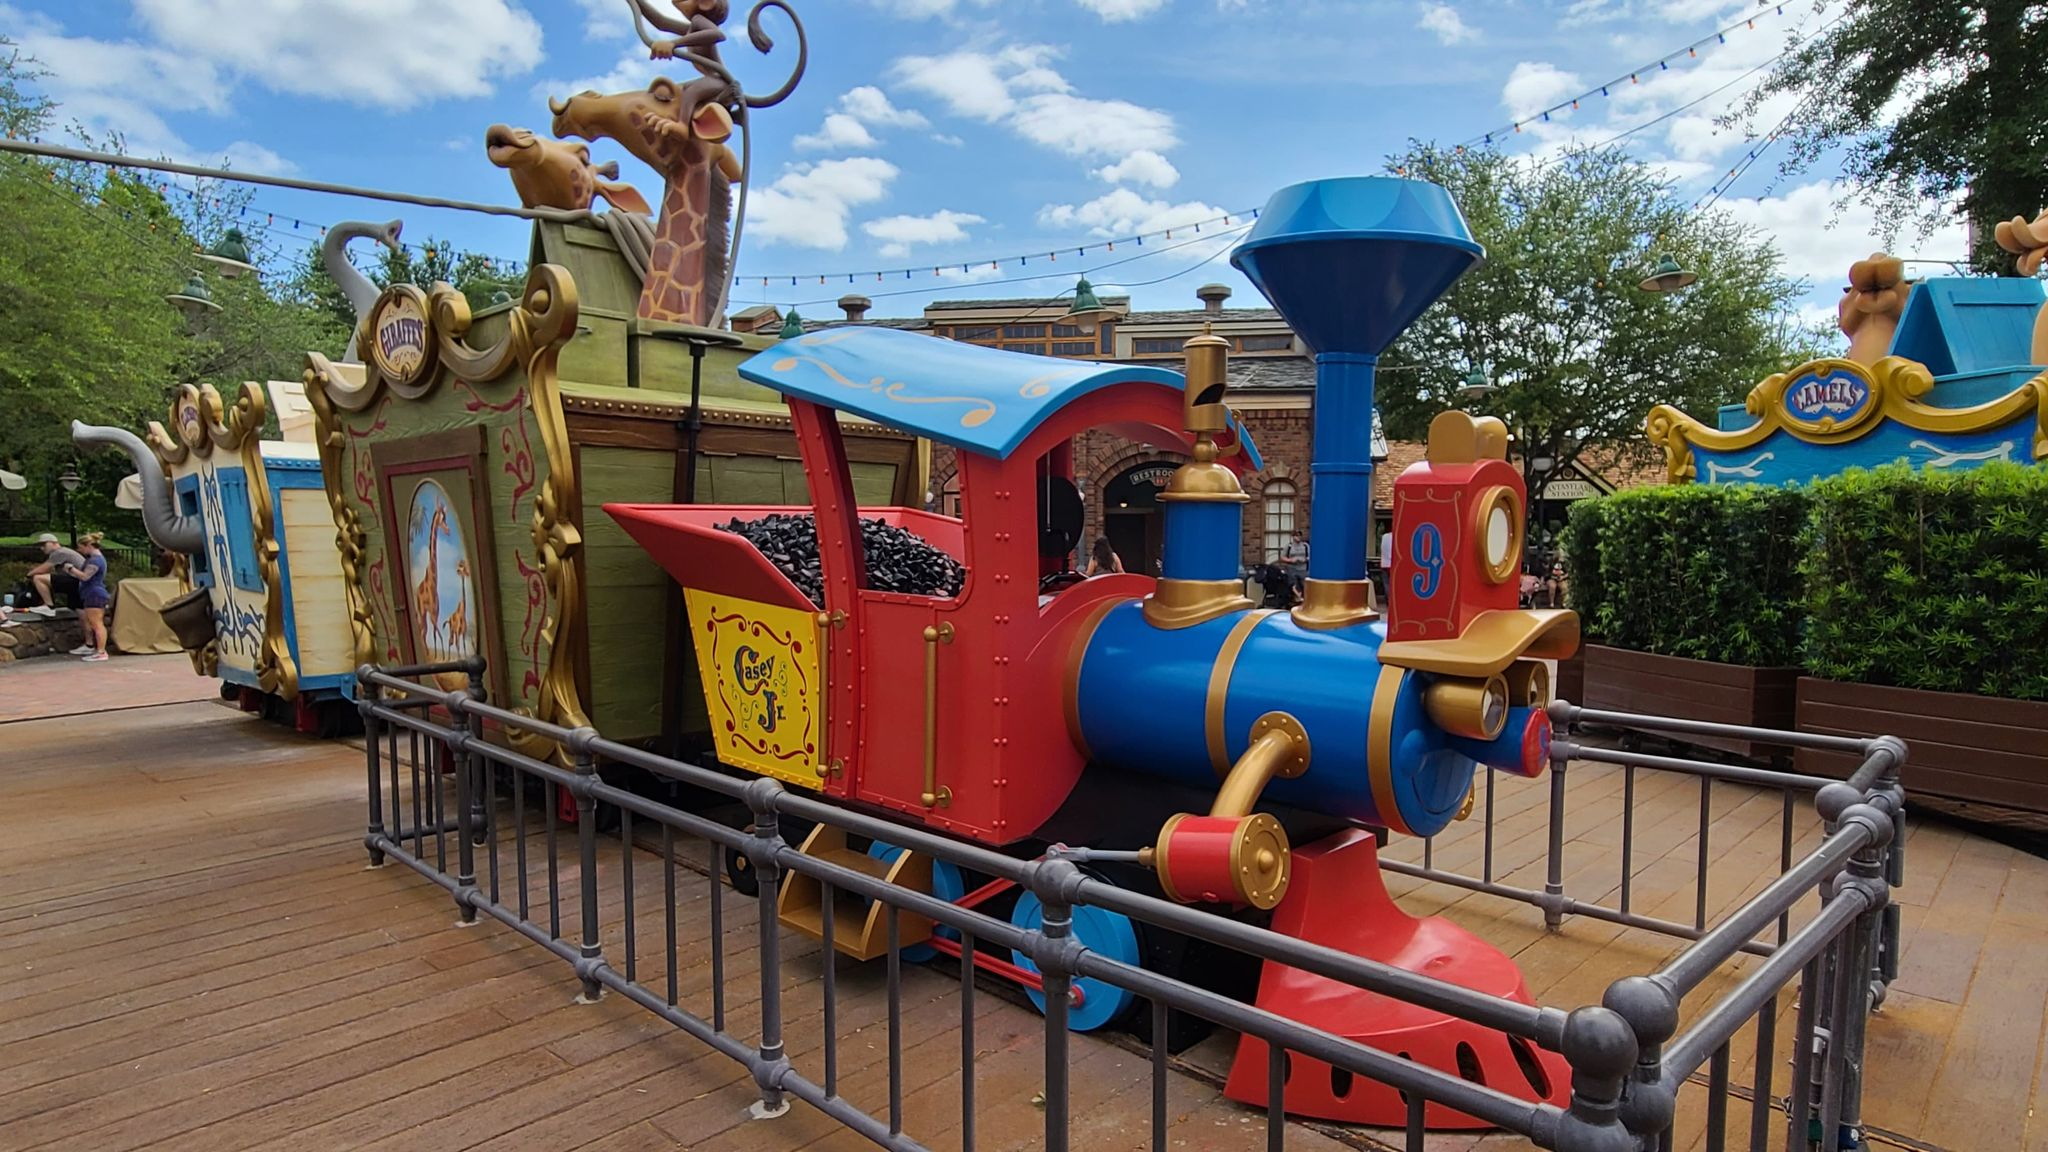 Storybook Circus in the Magic Kingdom to receive 50th Anniversary Updates 2